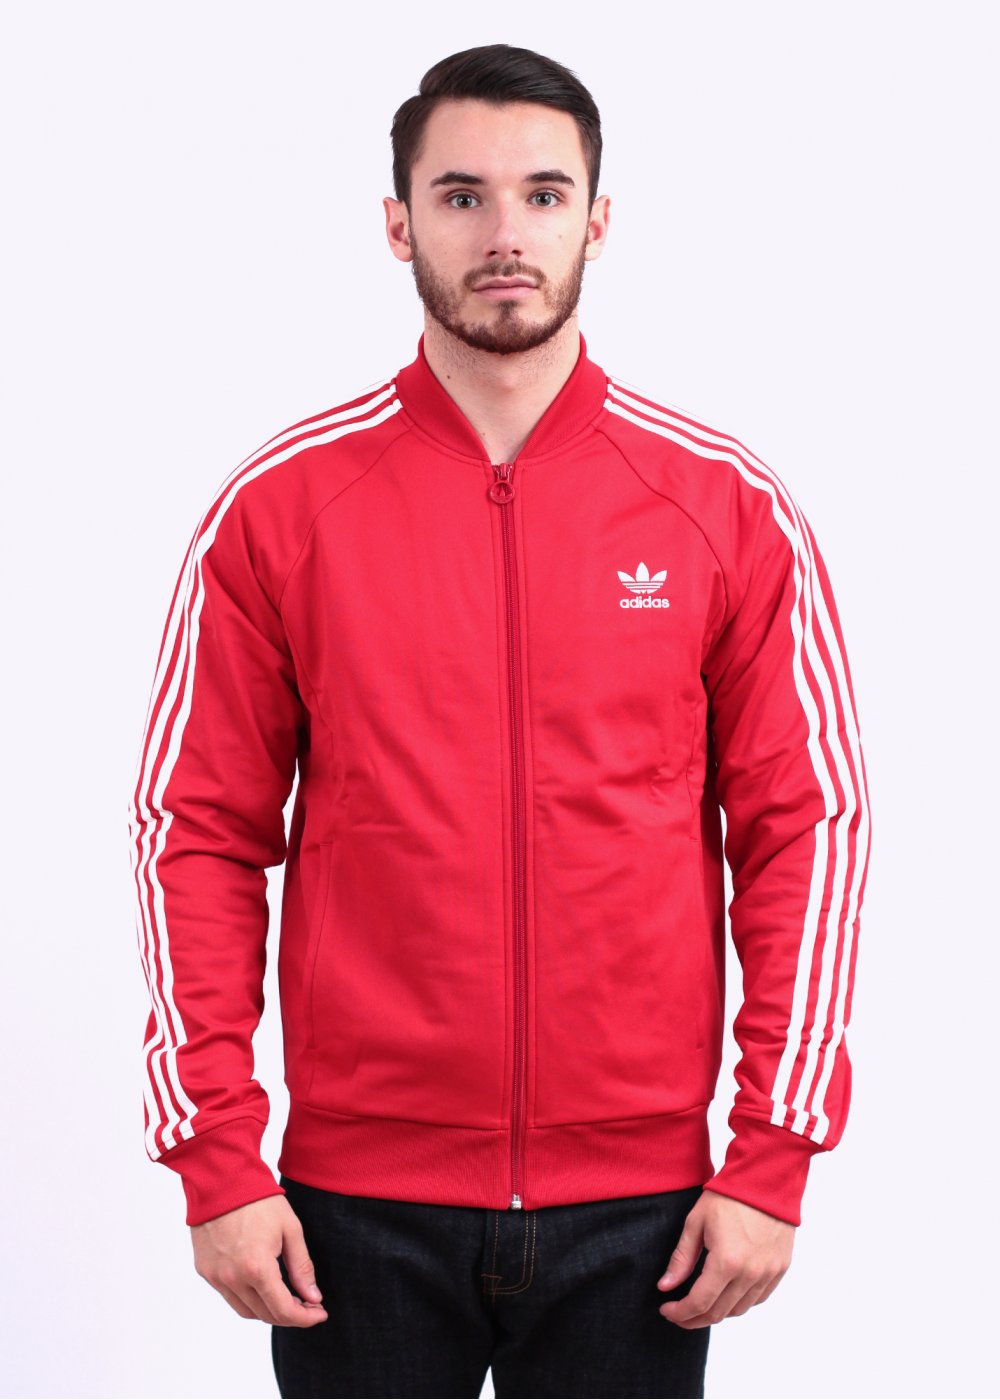 4d2b903a6a9c5e adidas Originals Superstar Track Top - Collegiate Red